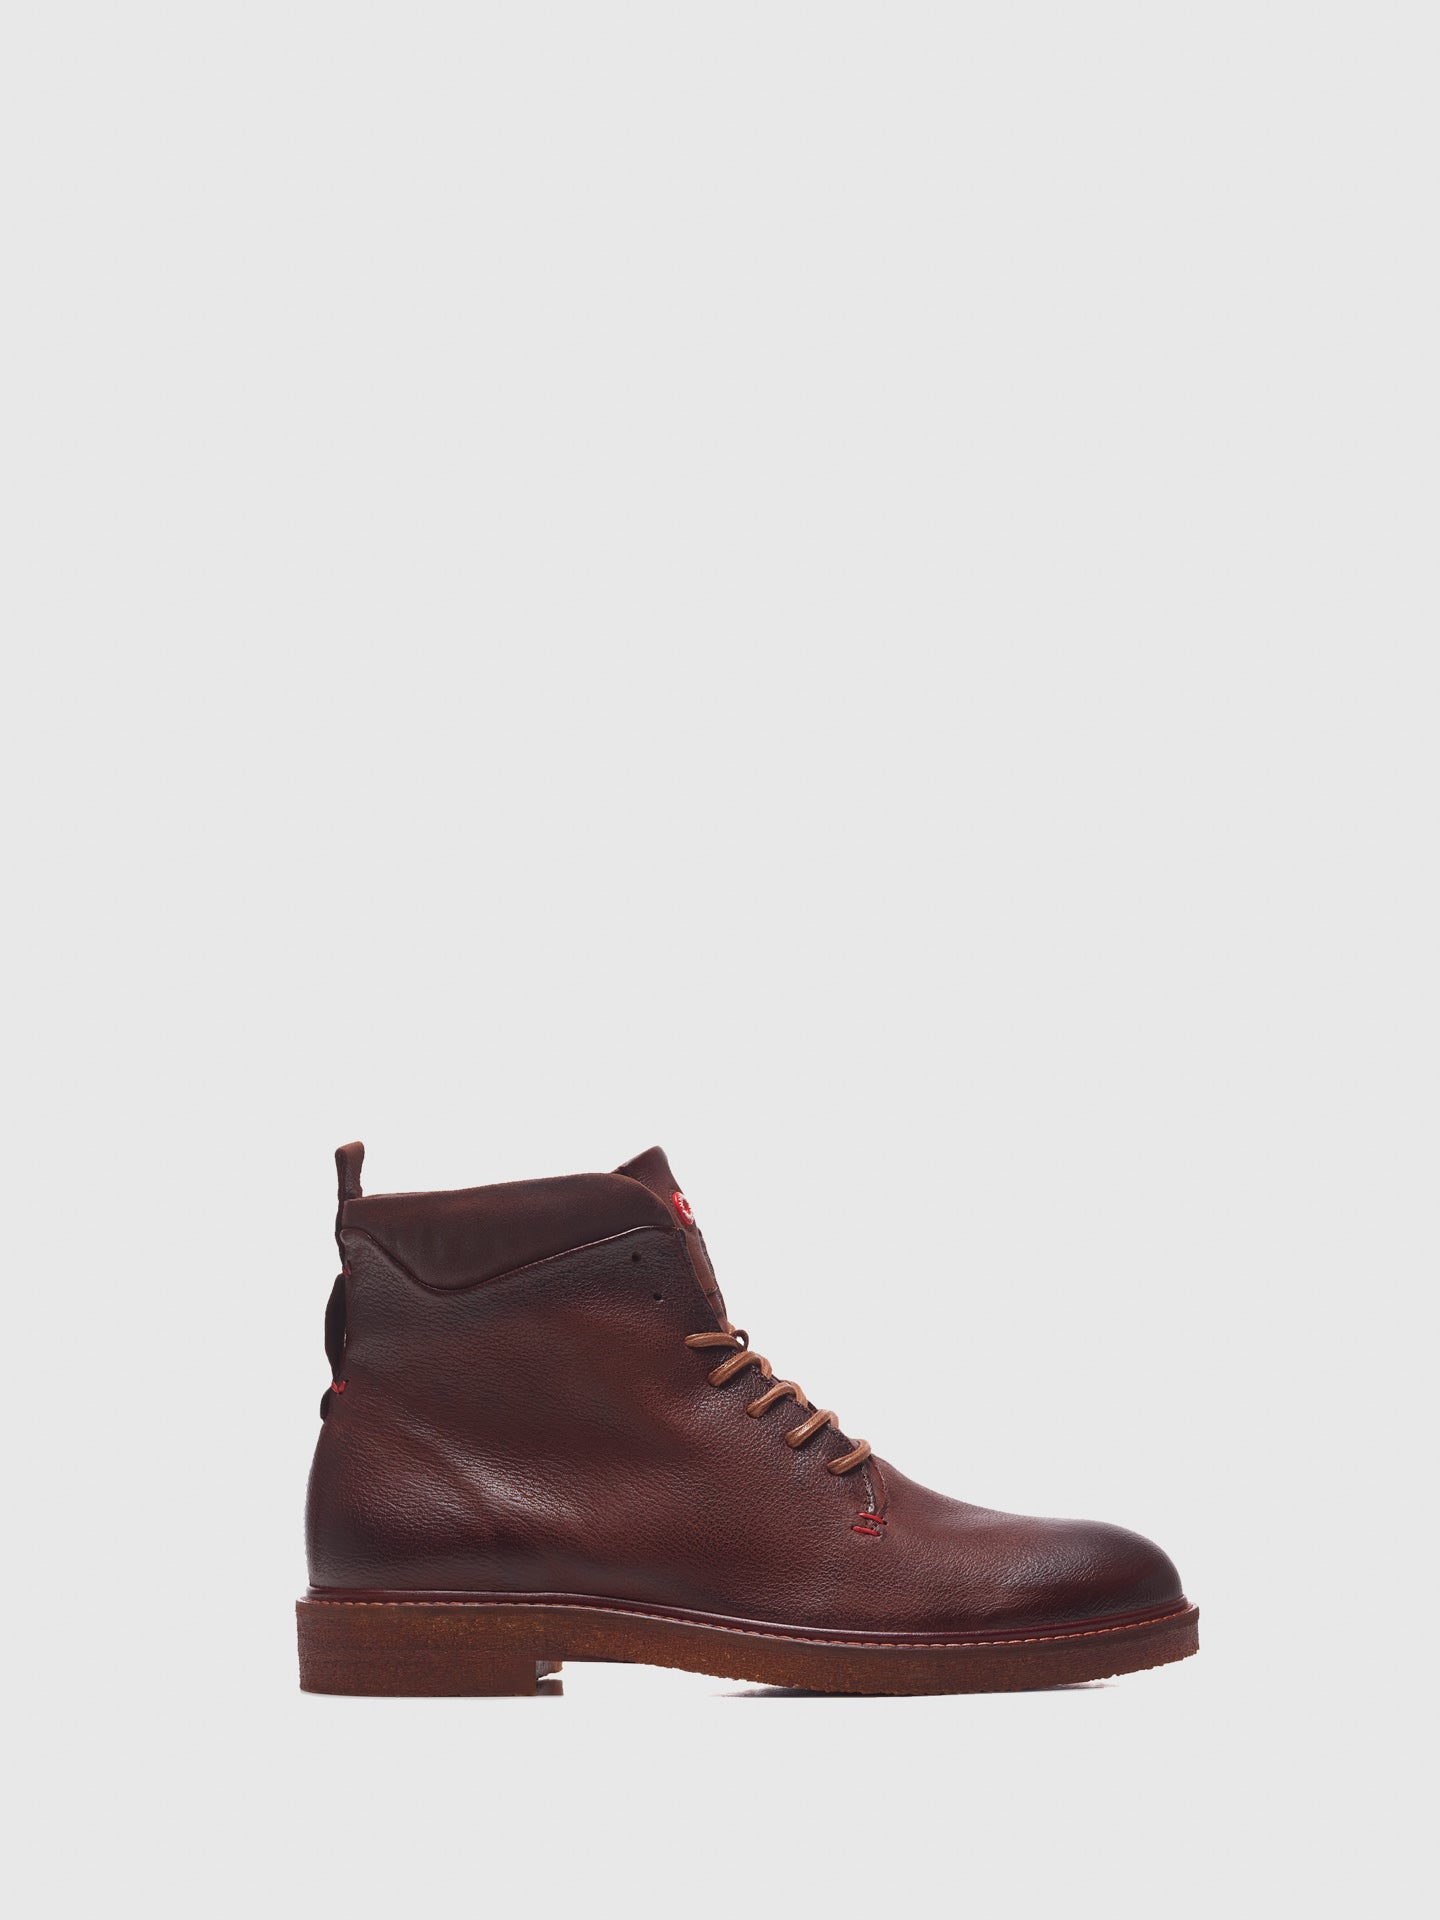 Nobrand Brown Military Boots